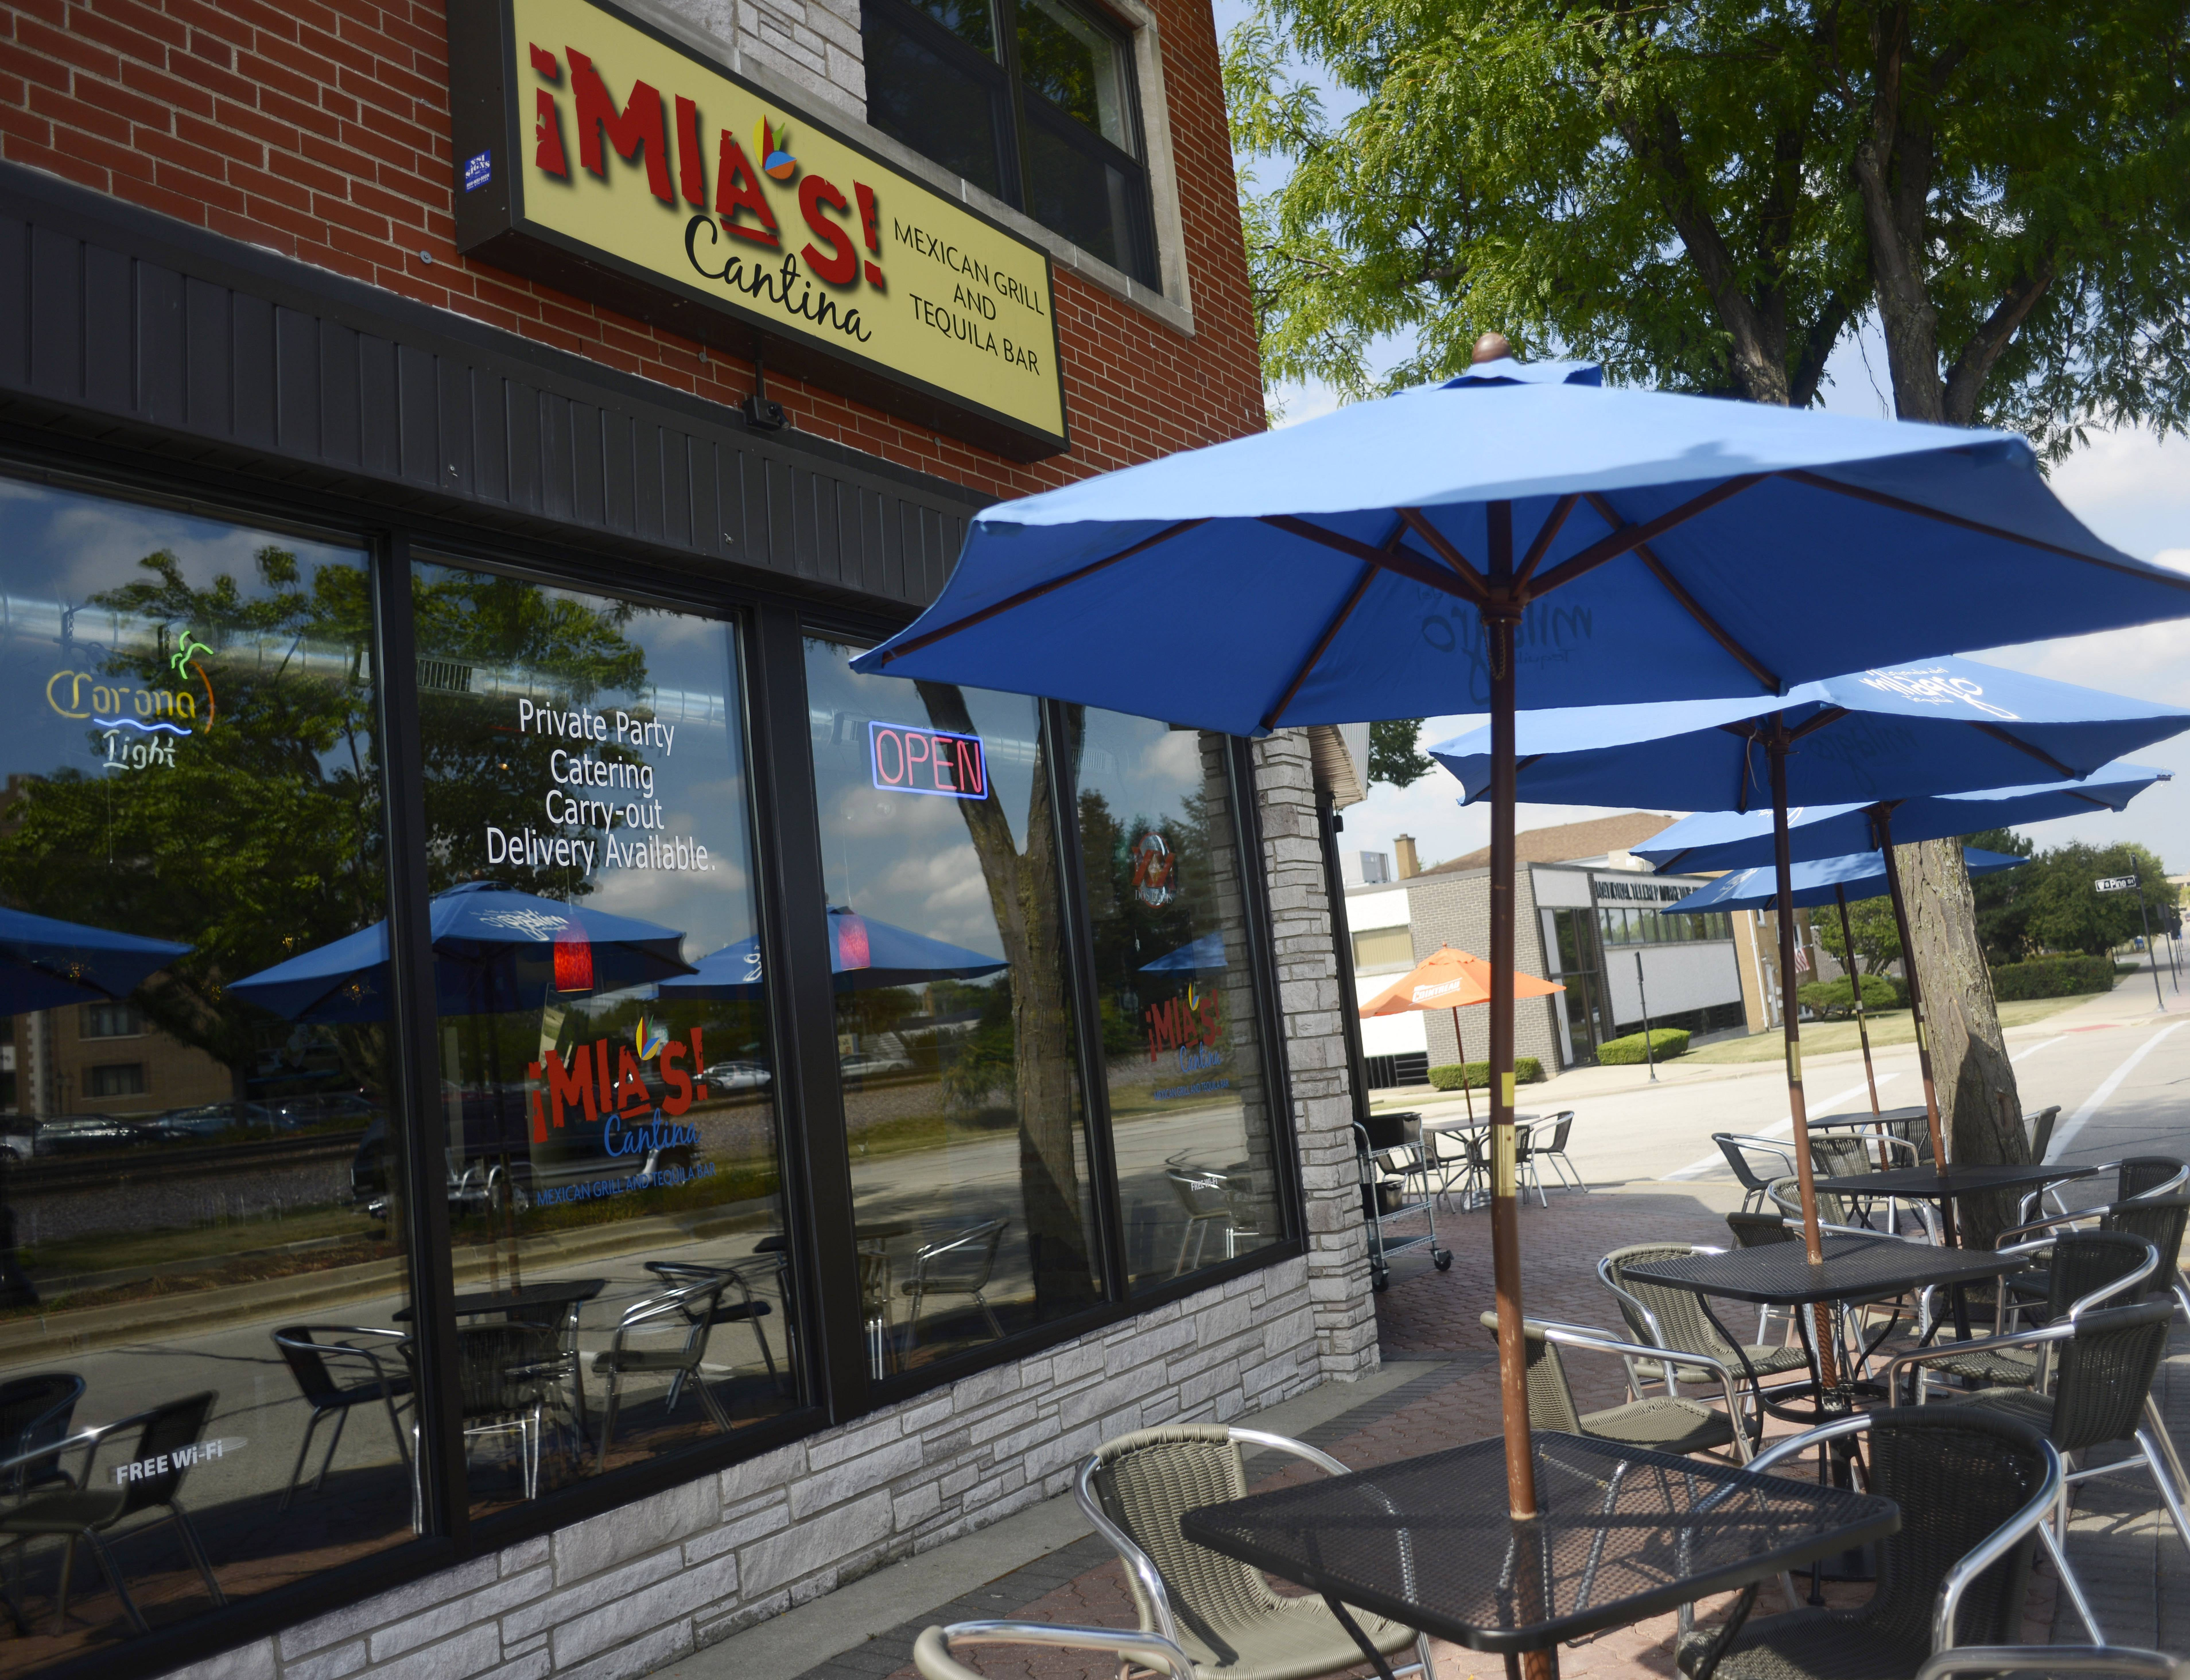 Mia's Cantina in downtown Mount Prospect will be one of the participating venues in the Summer Slide Pub Crawl, the new event organized by the Mount Prospect Downtown Merchants Association.